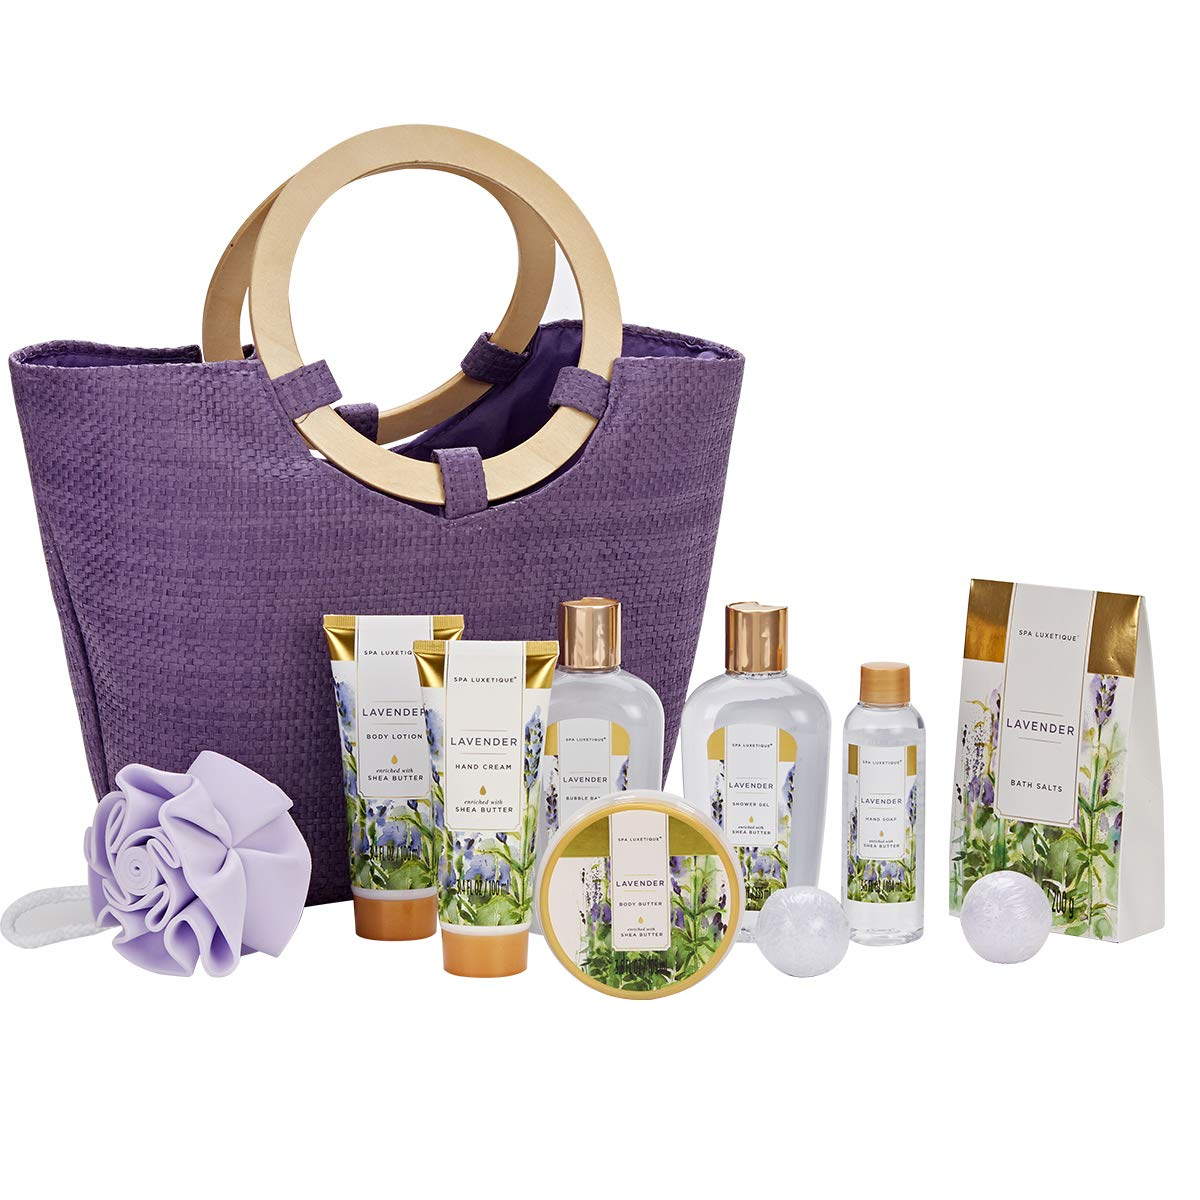 Spa Luxetique Lavender Spa Gift Baskets for Women, Premium 10pc Gift Baskets, Best Holiday Gift Set for Women - Deluxe Spa Tote Bag with Wooden Handle, Bath Salt, Hand Soap, Shower Gel and More! by spa luxetique